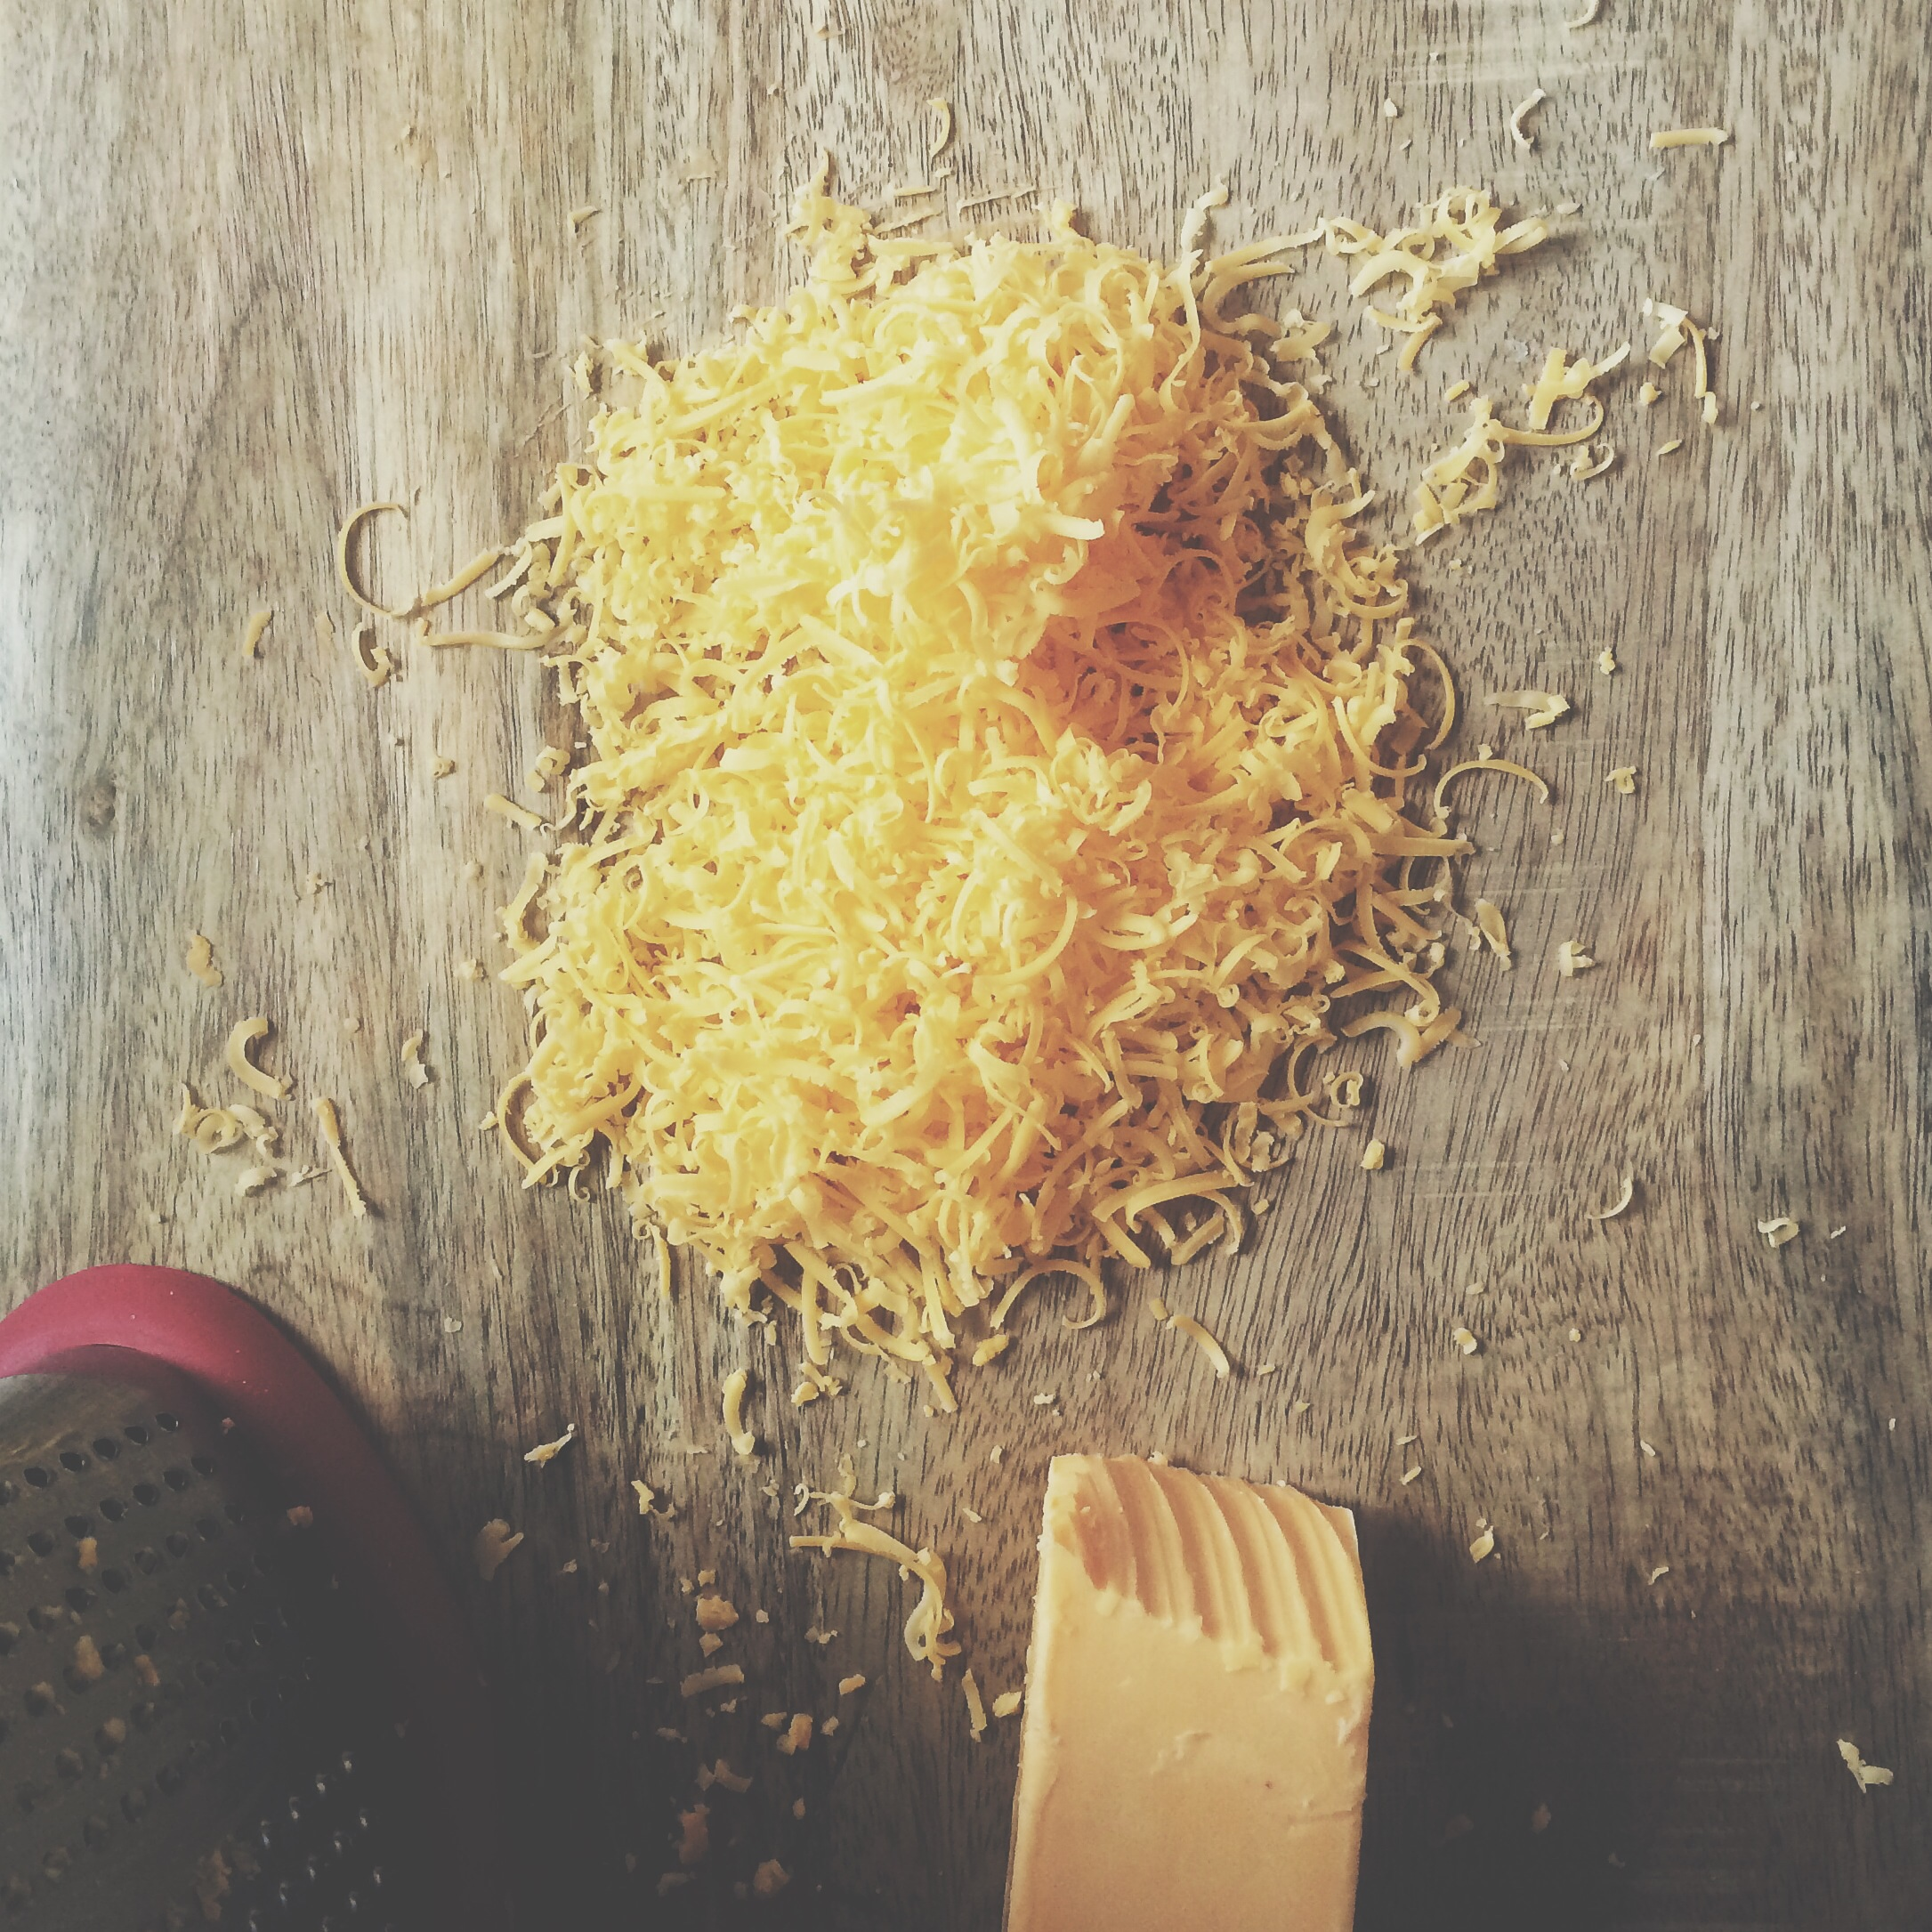 While the pretzels cooked for the first eight minutes, I grated the cheddar.